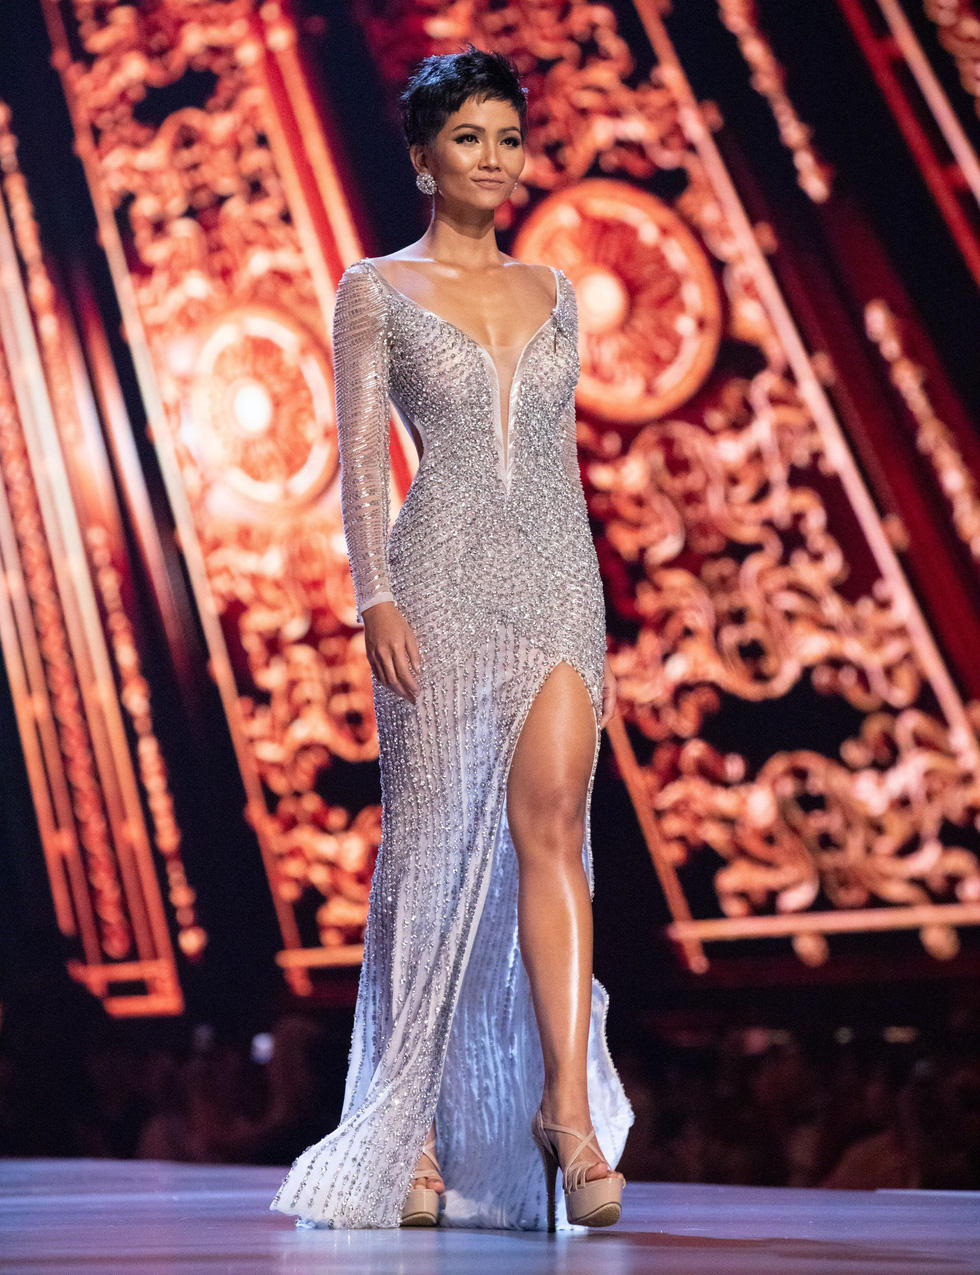 H'Hen Nie performs in the grand finale of the 2018 Miss Universe beauty pageant in Thailand on December 17, 2018.